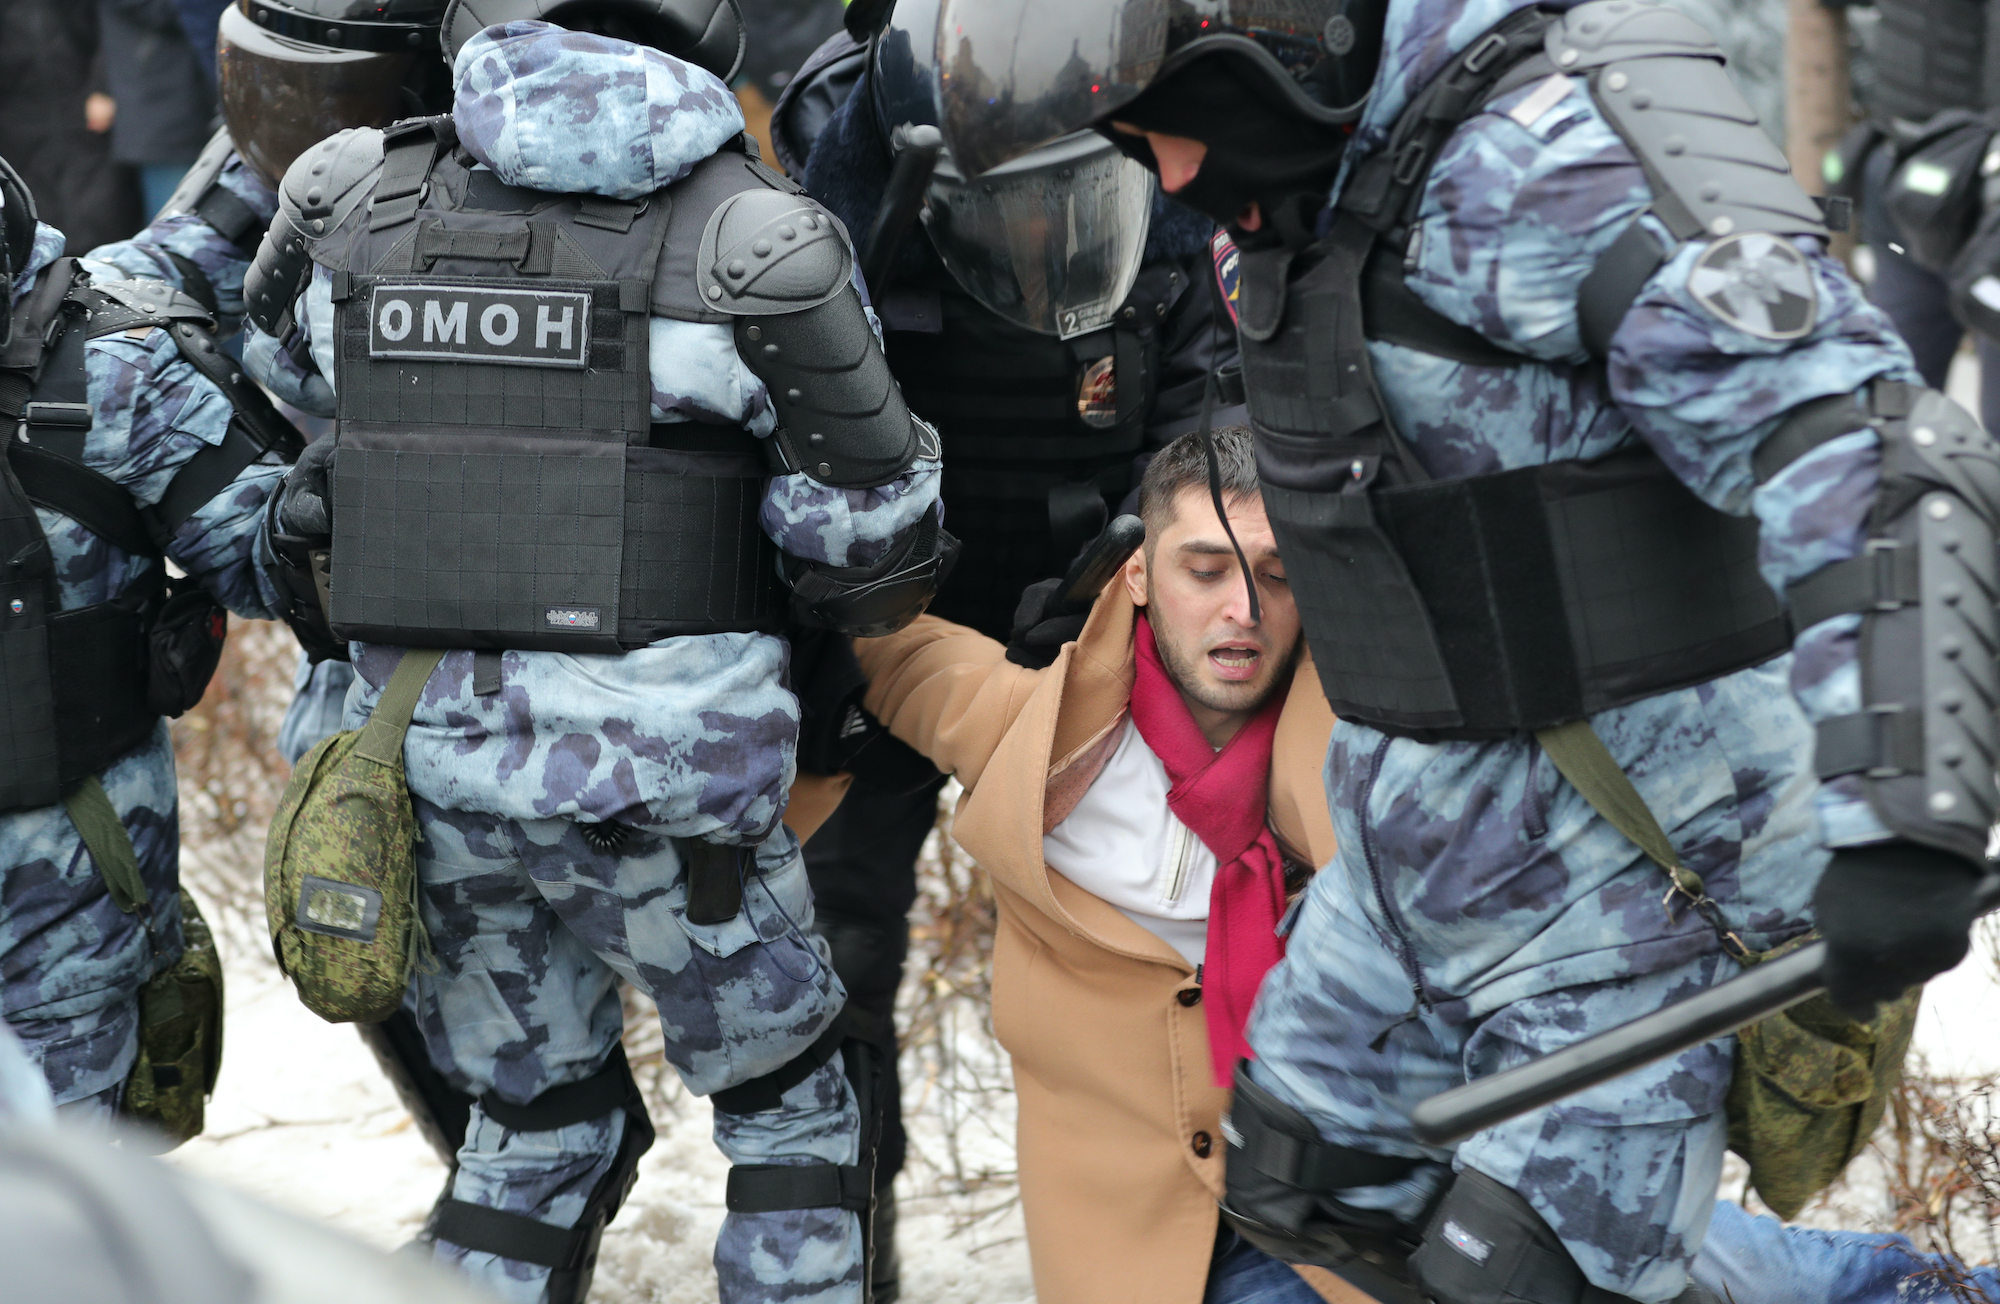 Police forcefully detain a protester in Moscow, Russia in January 2021. (Image credit: Ruslan Kroshkin / Shutterstock.com)